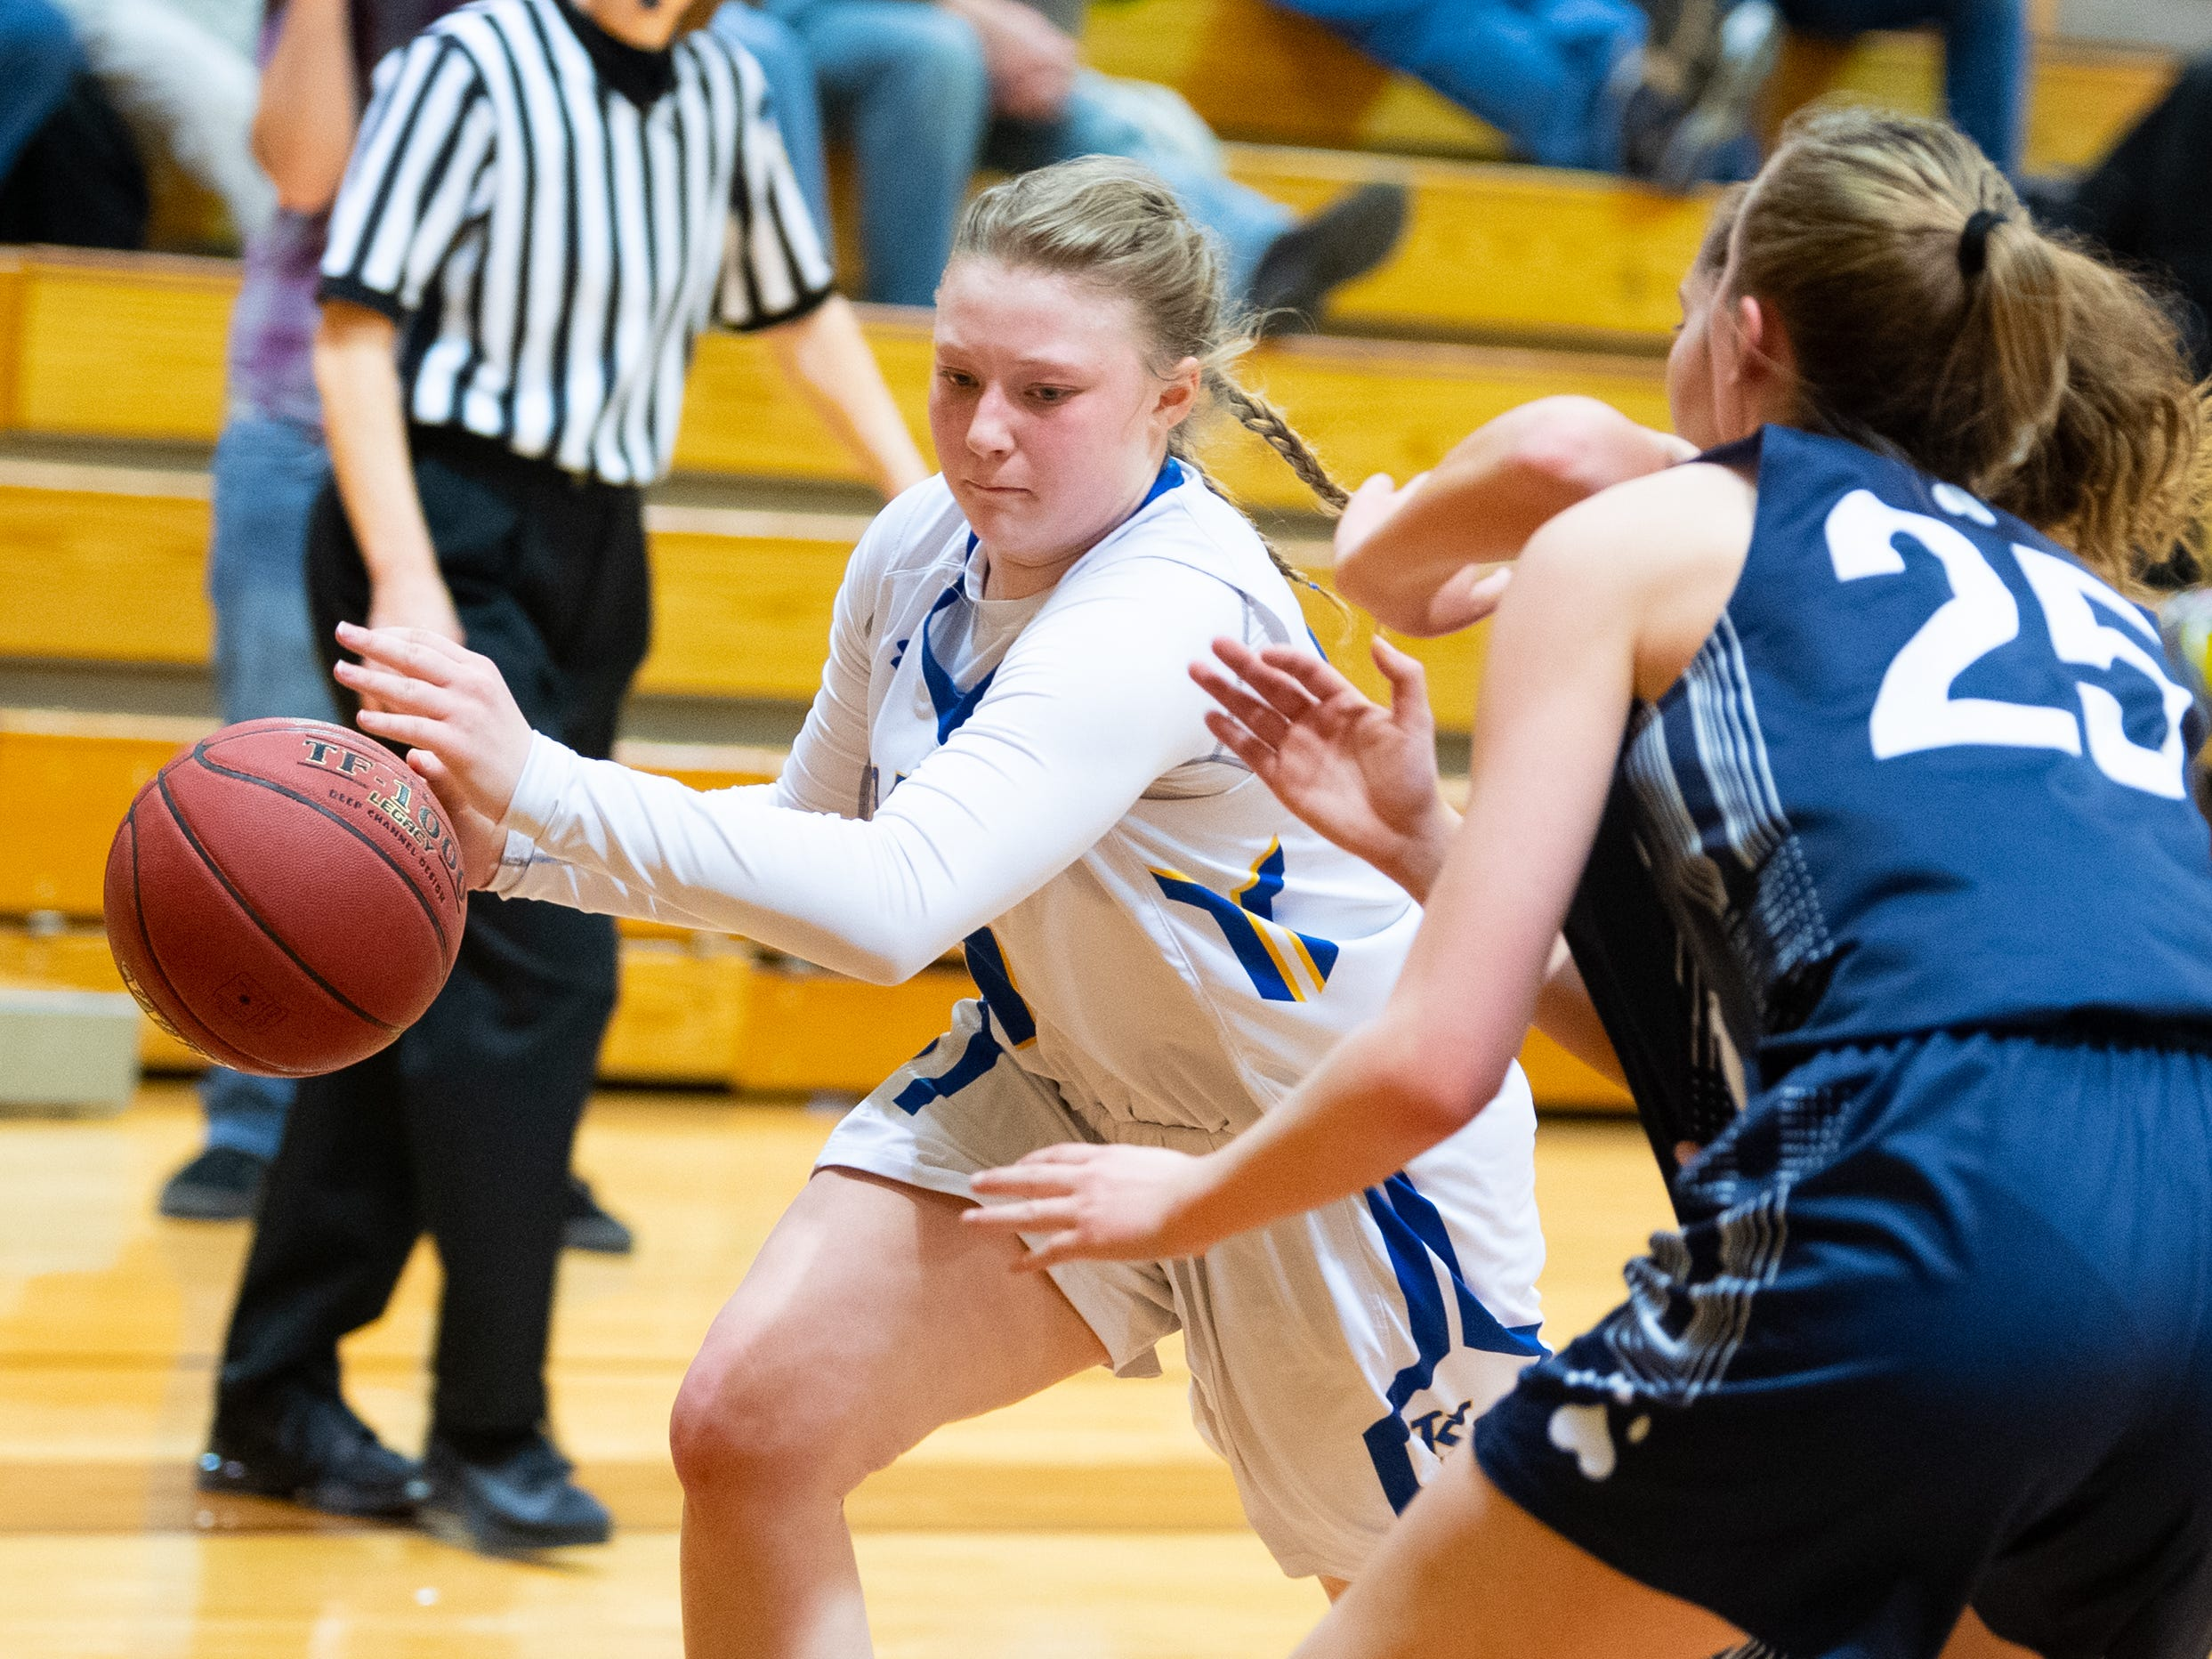 Chandler Swanson (14) looks to go past the defense during the PIAA second round girls' basketball game between Kennard-Dale and Mifflinburg Area, March 13, 2019 at Milton Hershey School. The Rams fell to the Wildcats 51 to 45.